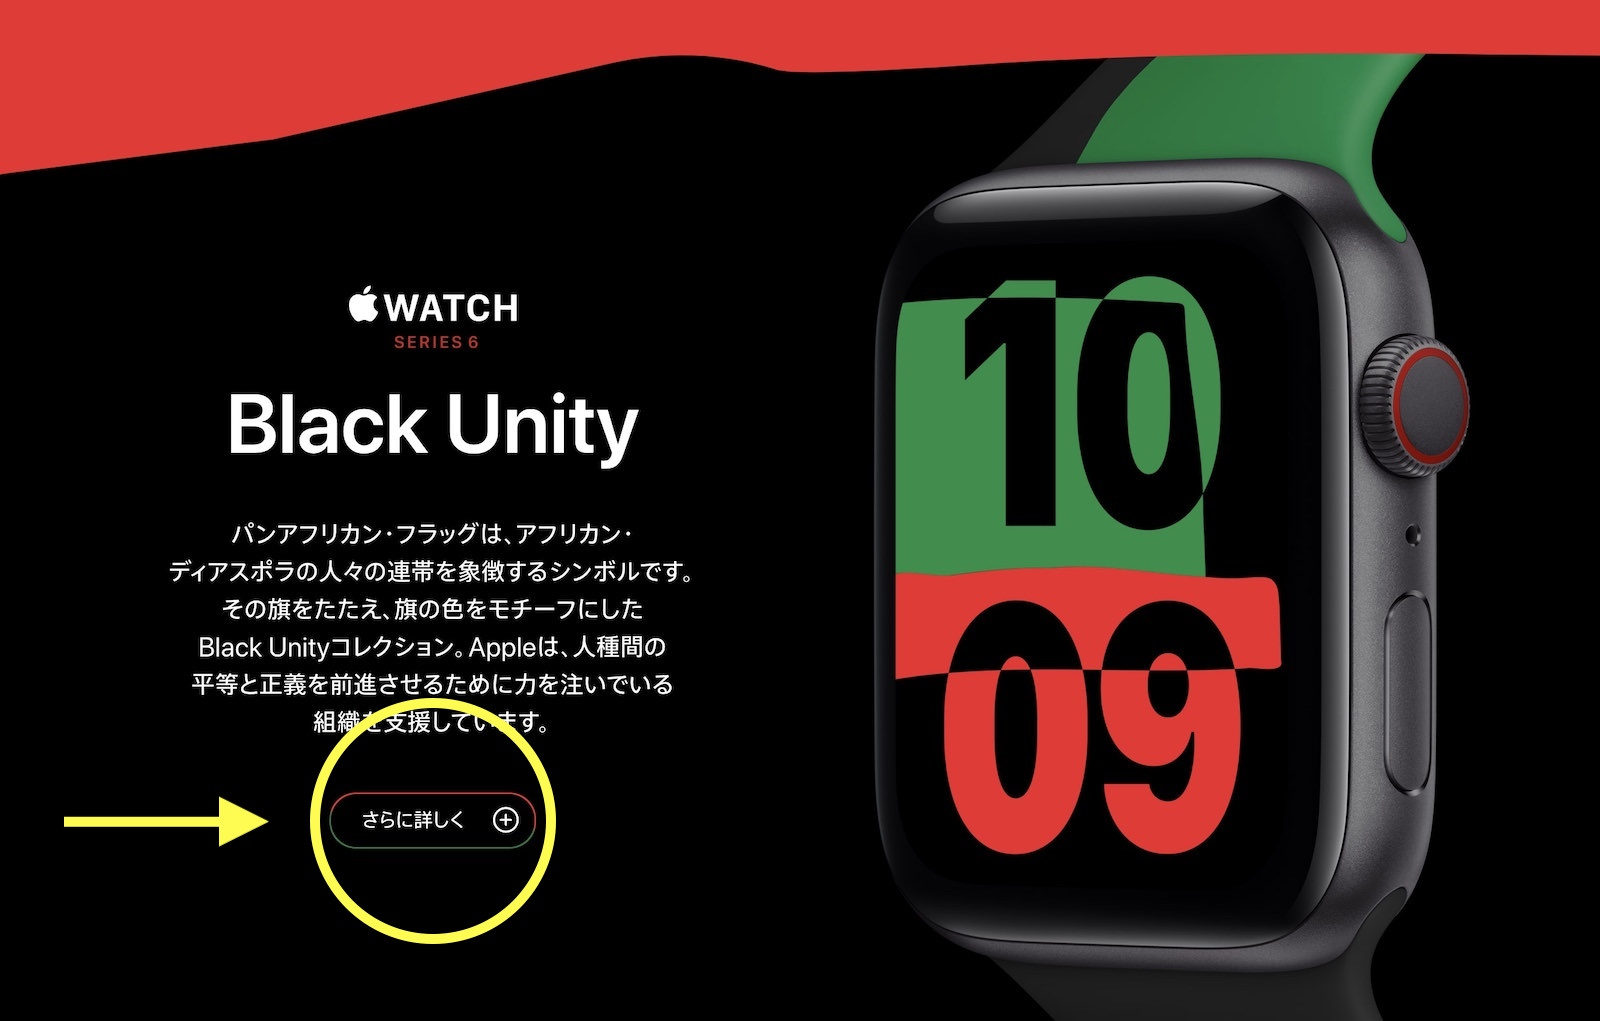 Black unity wallpapers 2